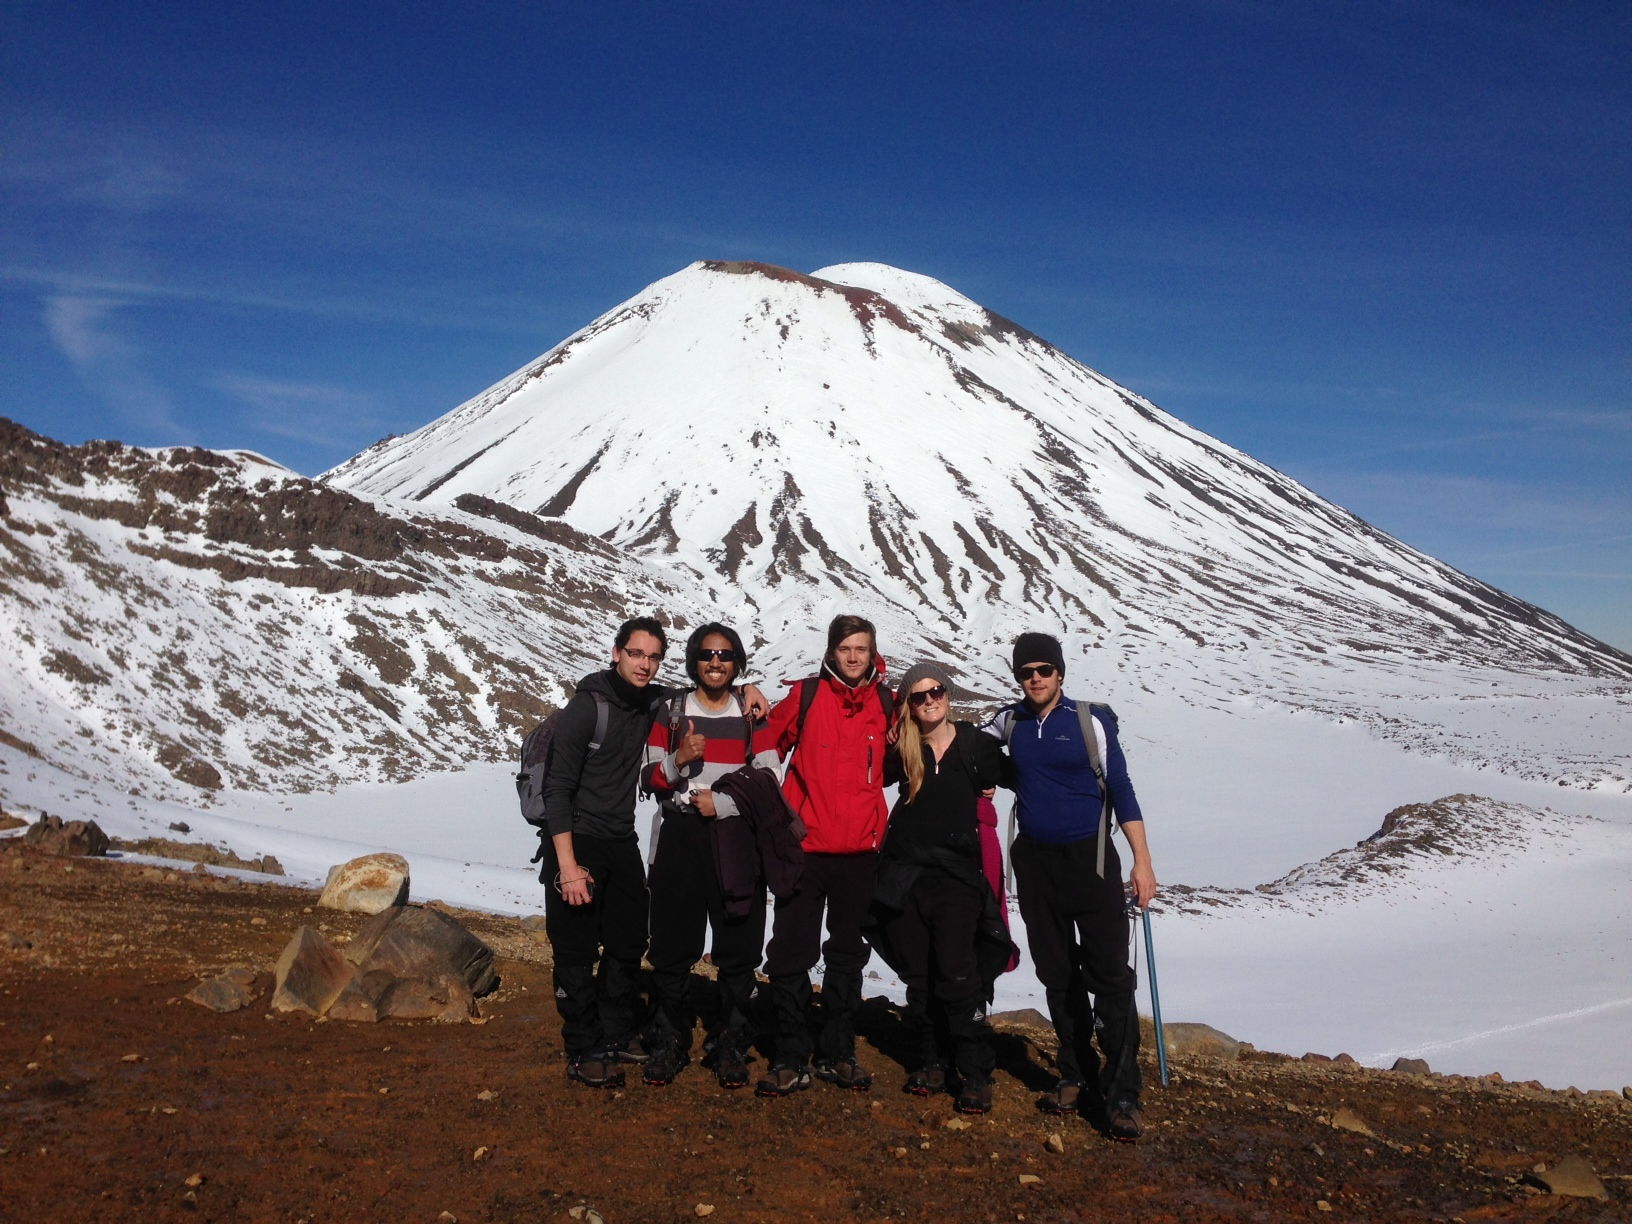 tongariro alpine crossing winter